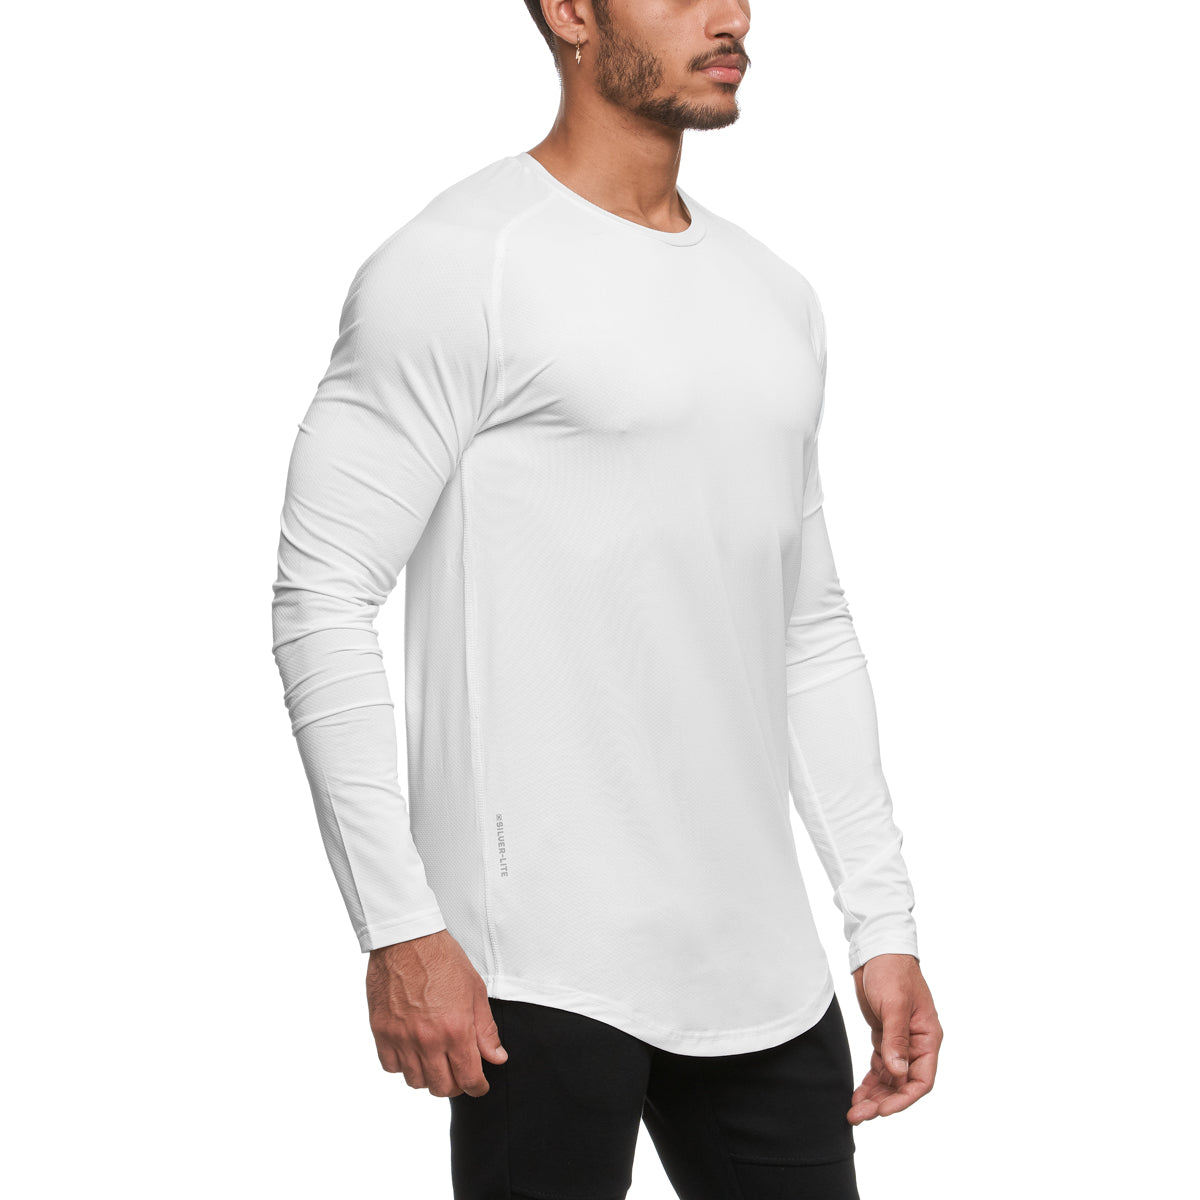 0149. Silver-Lite® Long Sleeve - White